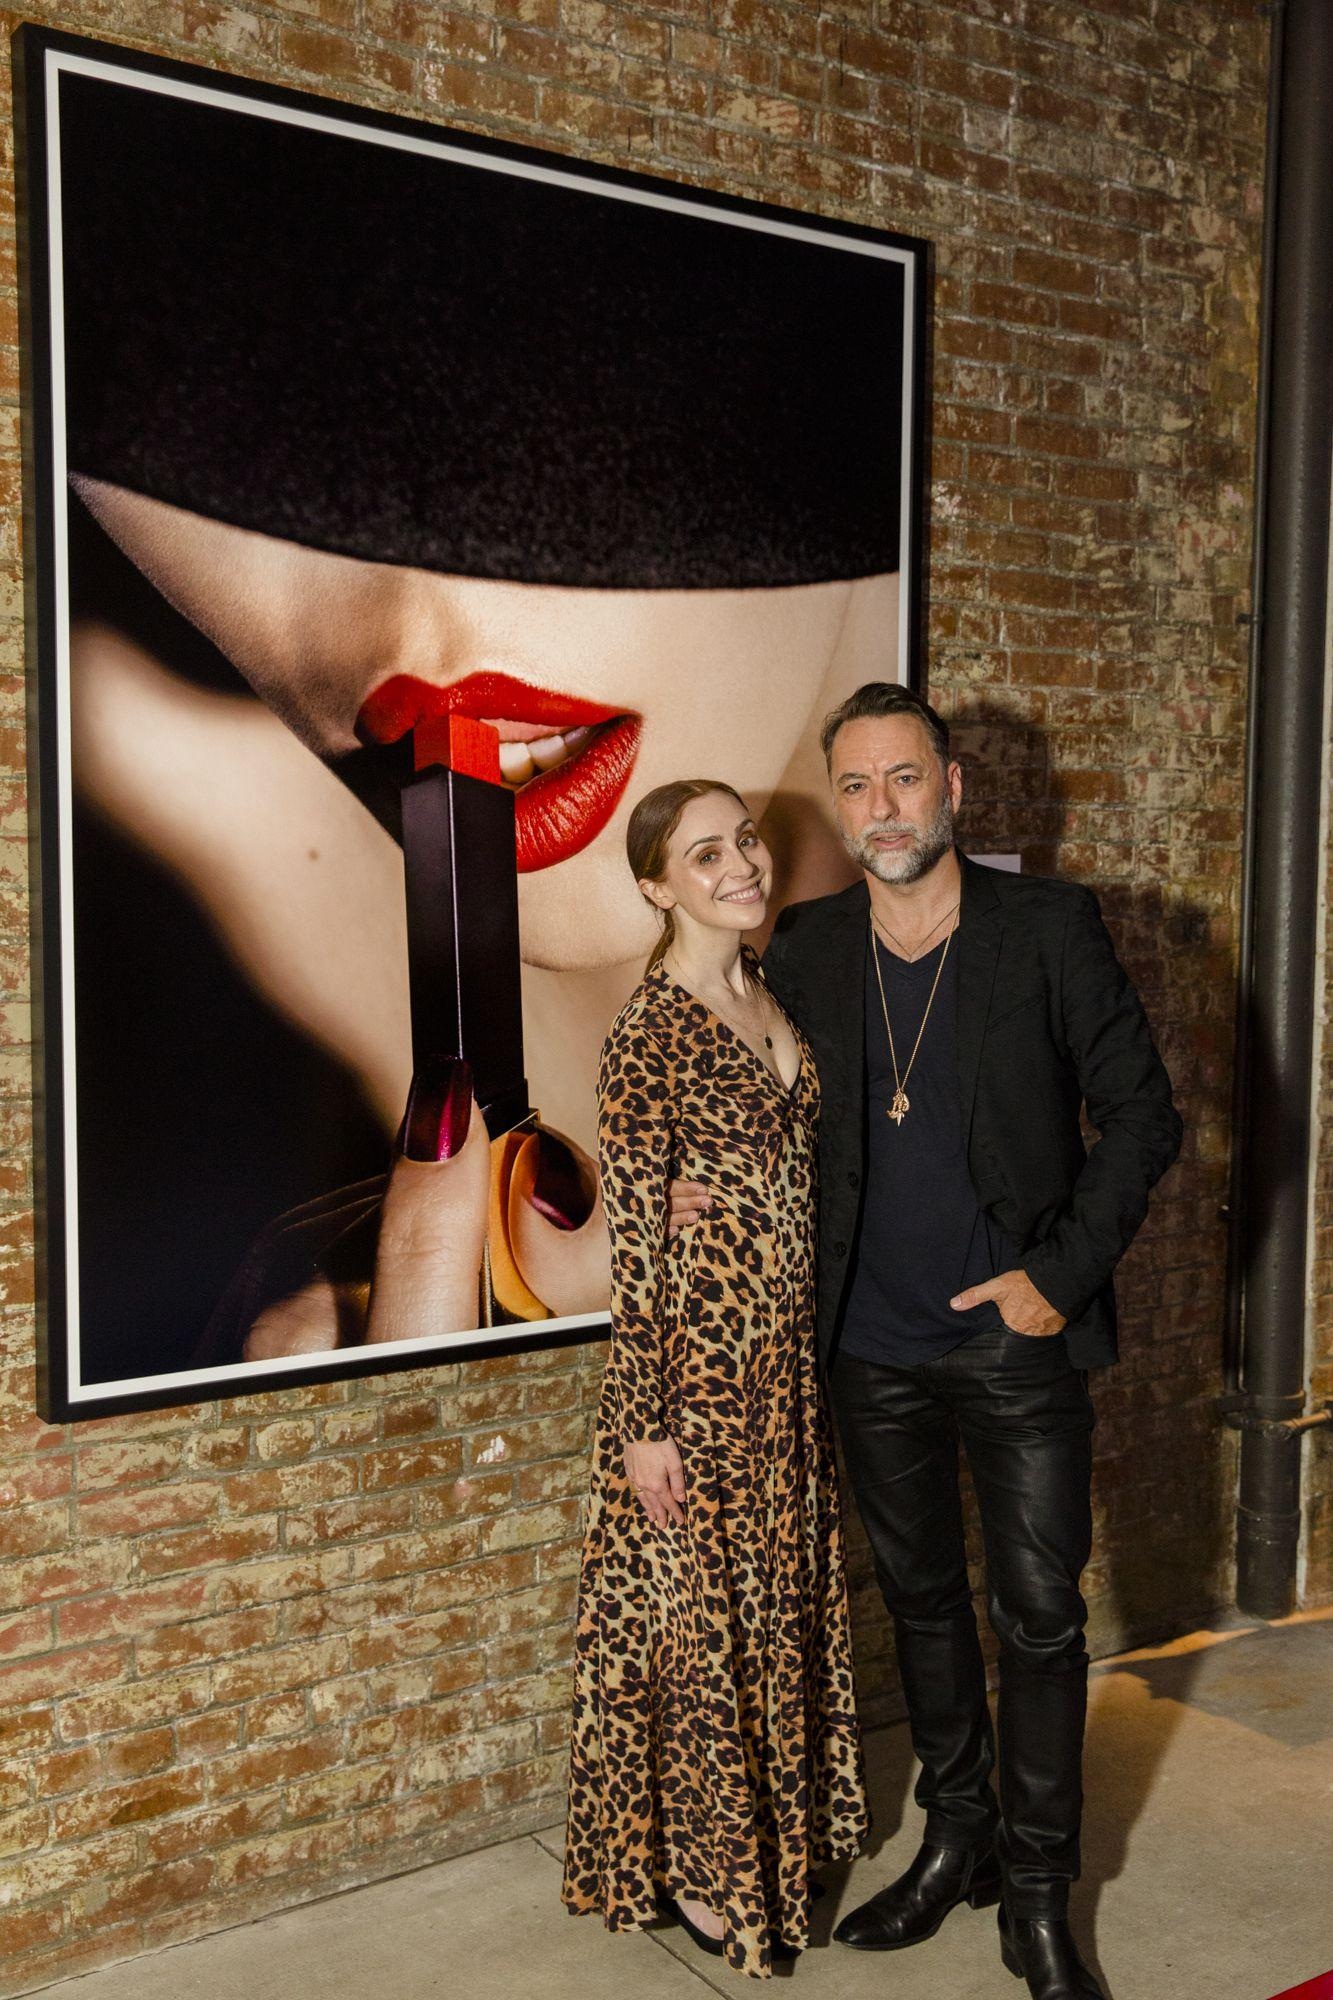 A Look Inside the Stunning YSL Beauté Party at New York Fashion Week